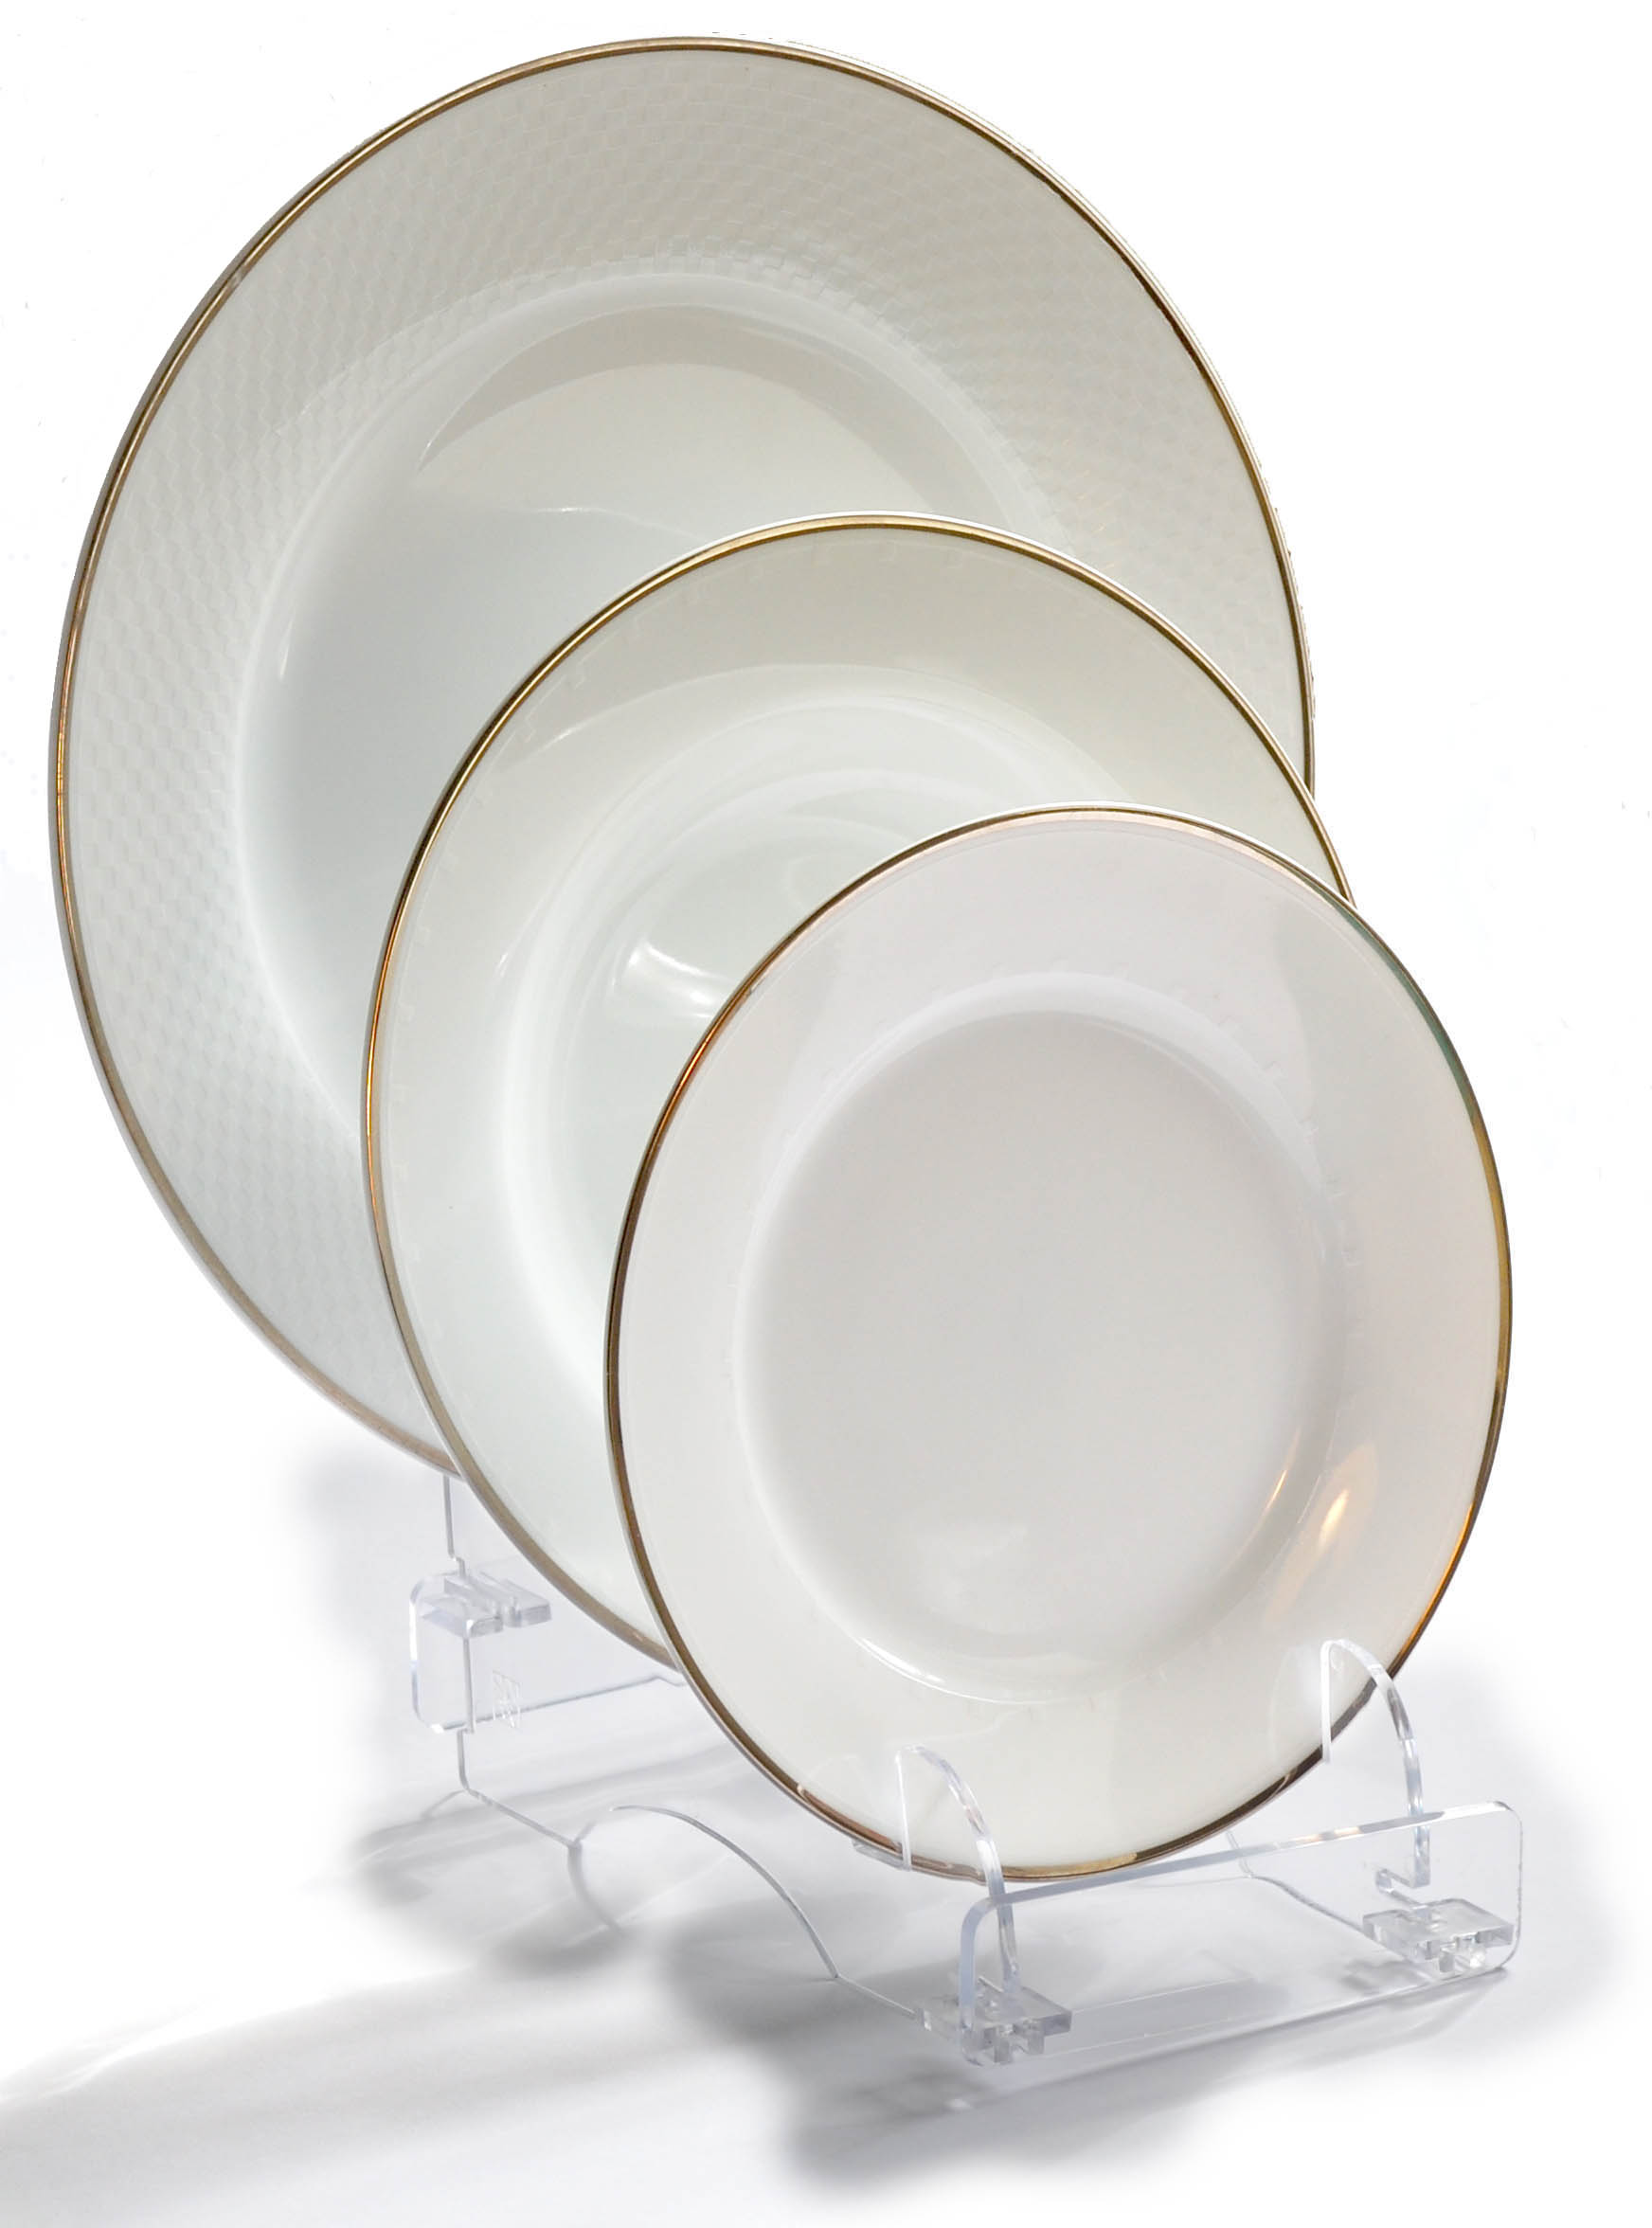 Plate-Stand.co.uk - Products - Dinnerware Service Setting Display Stands